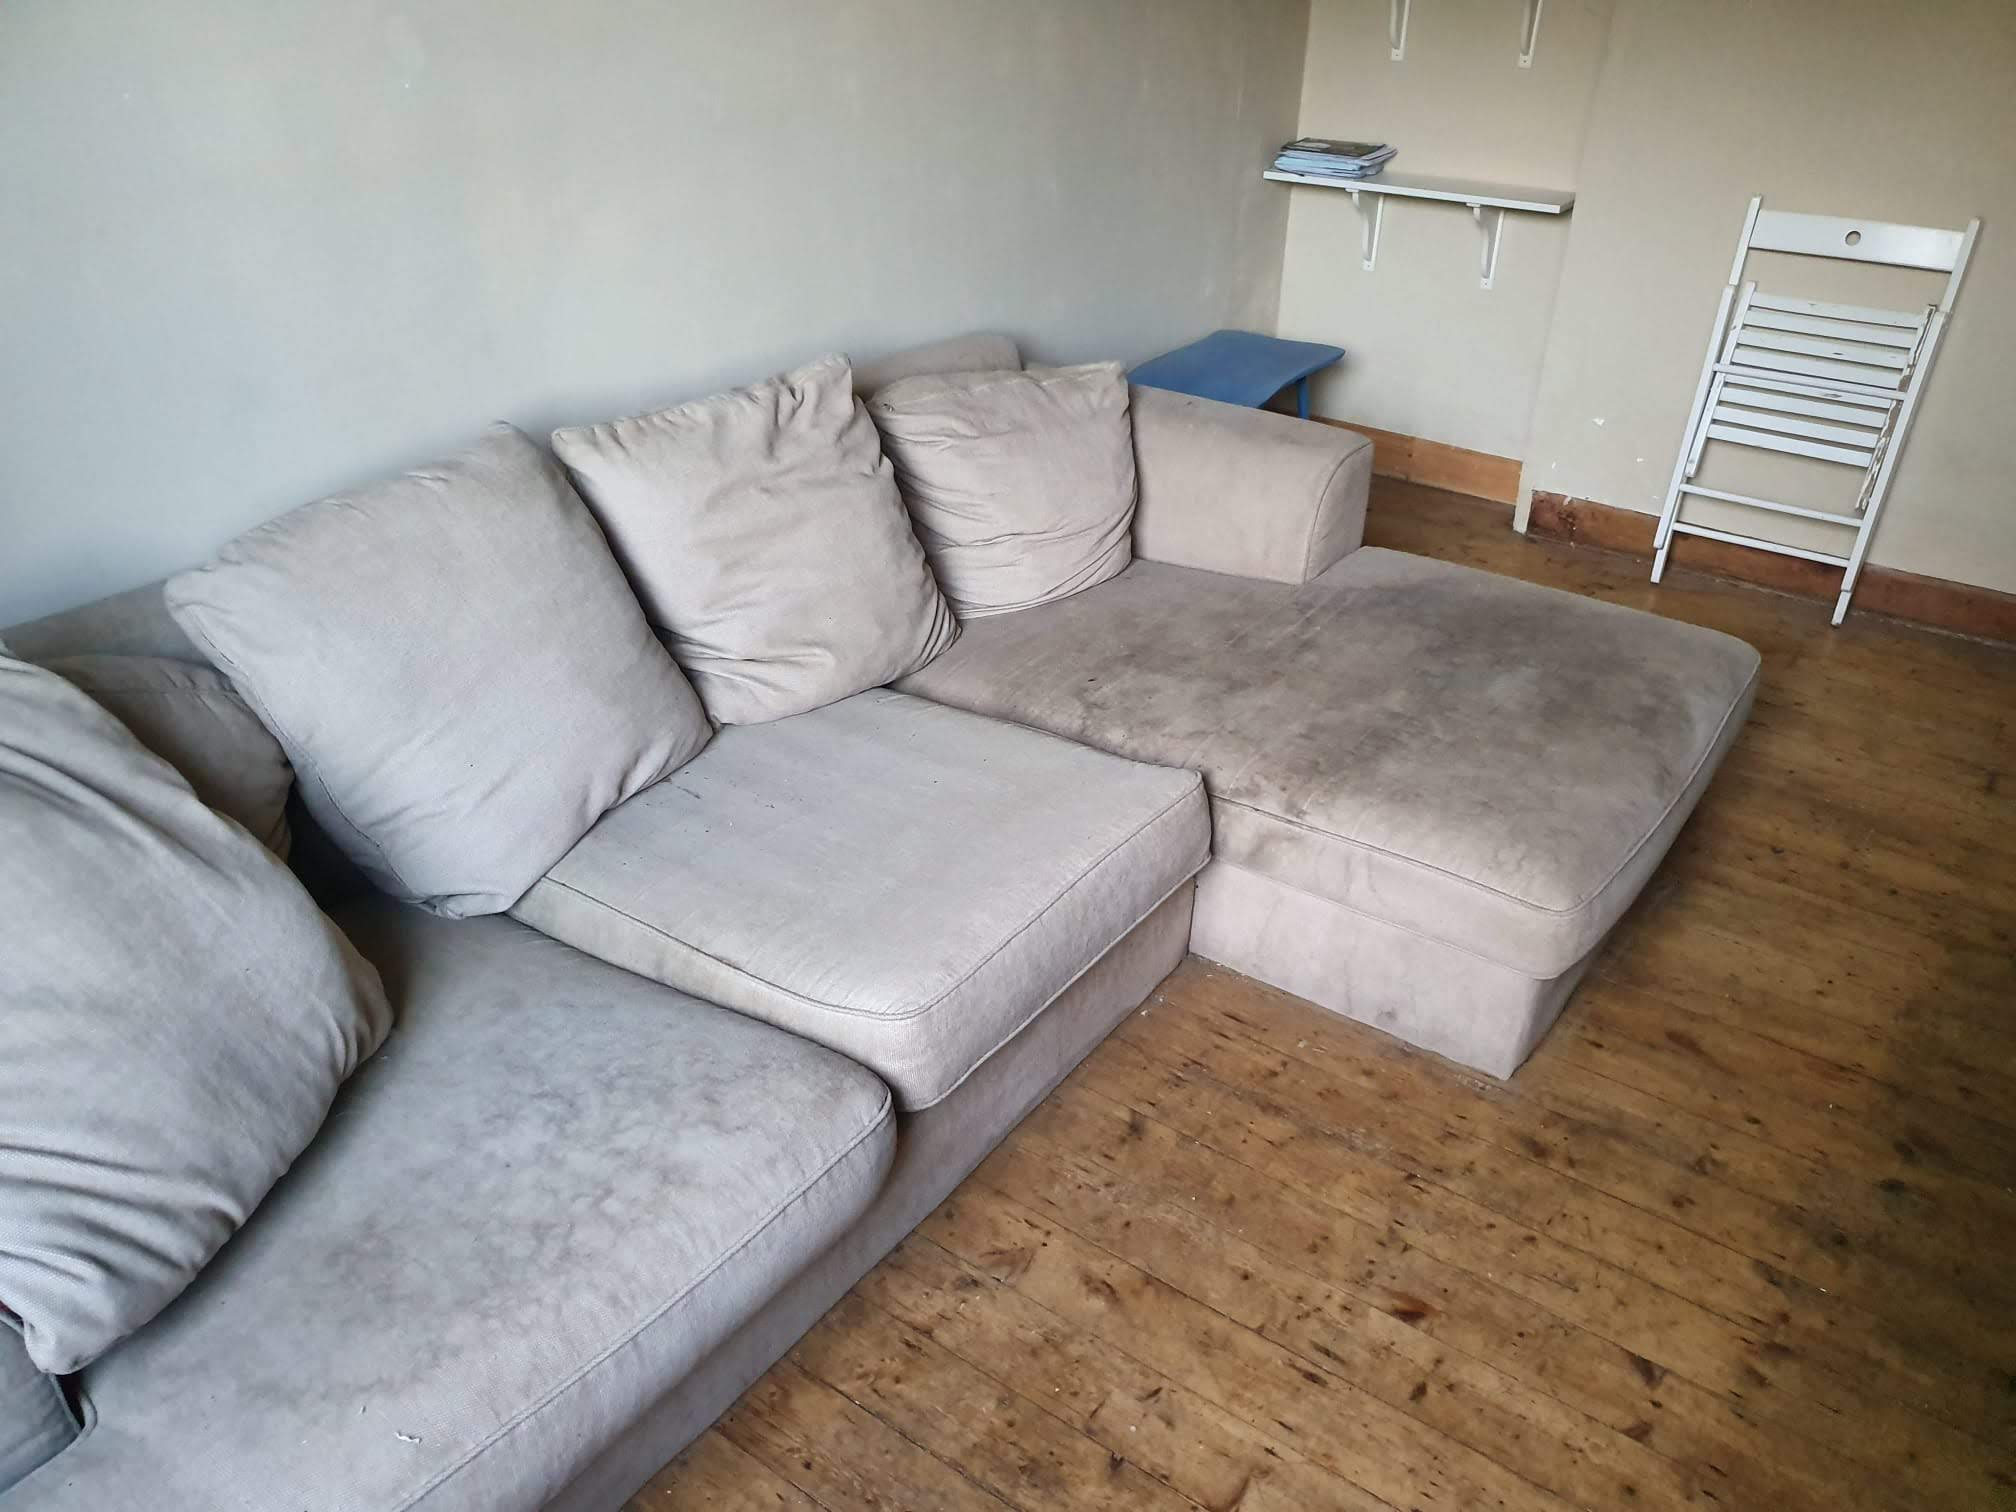 Before: Stained beige sofa